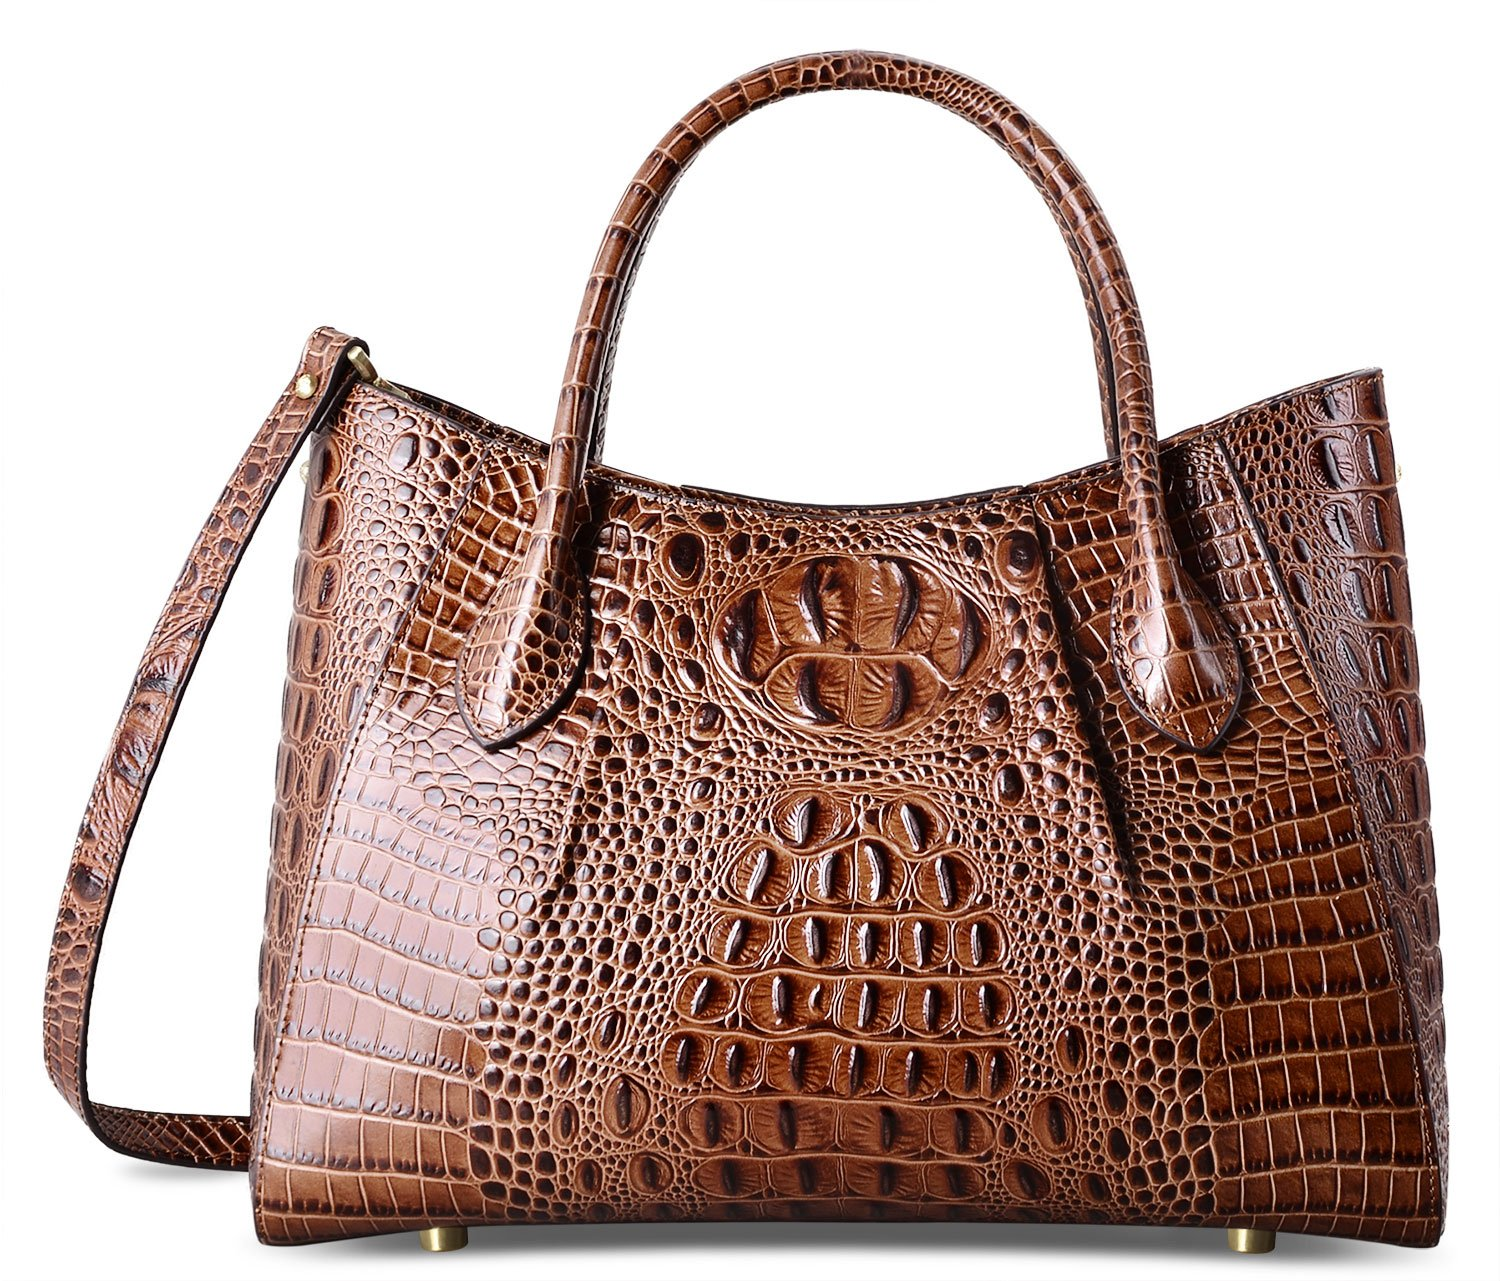 PIFUREN Women Top Handle Satchel Handbags Crocodile Leather Tote Bag C69678 ( Brown)